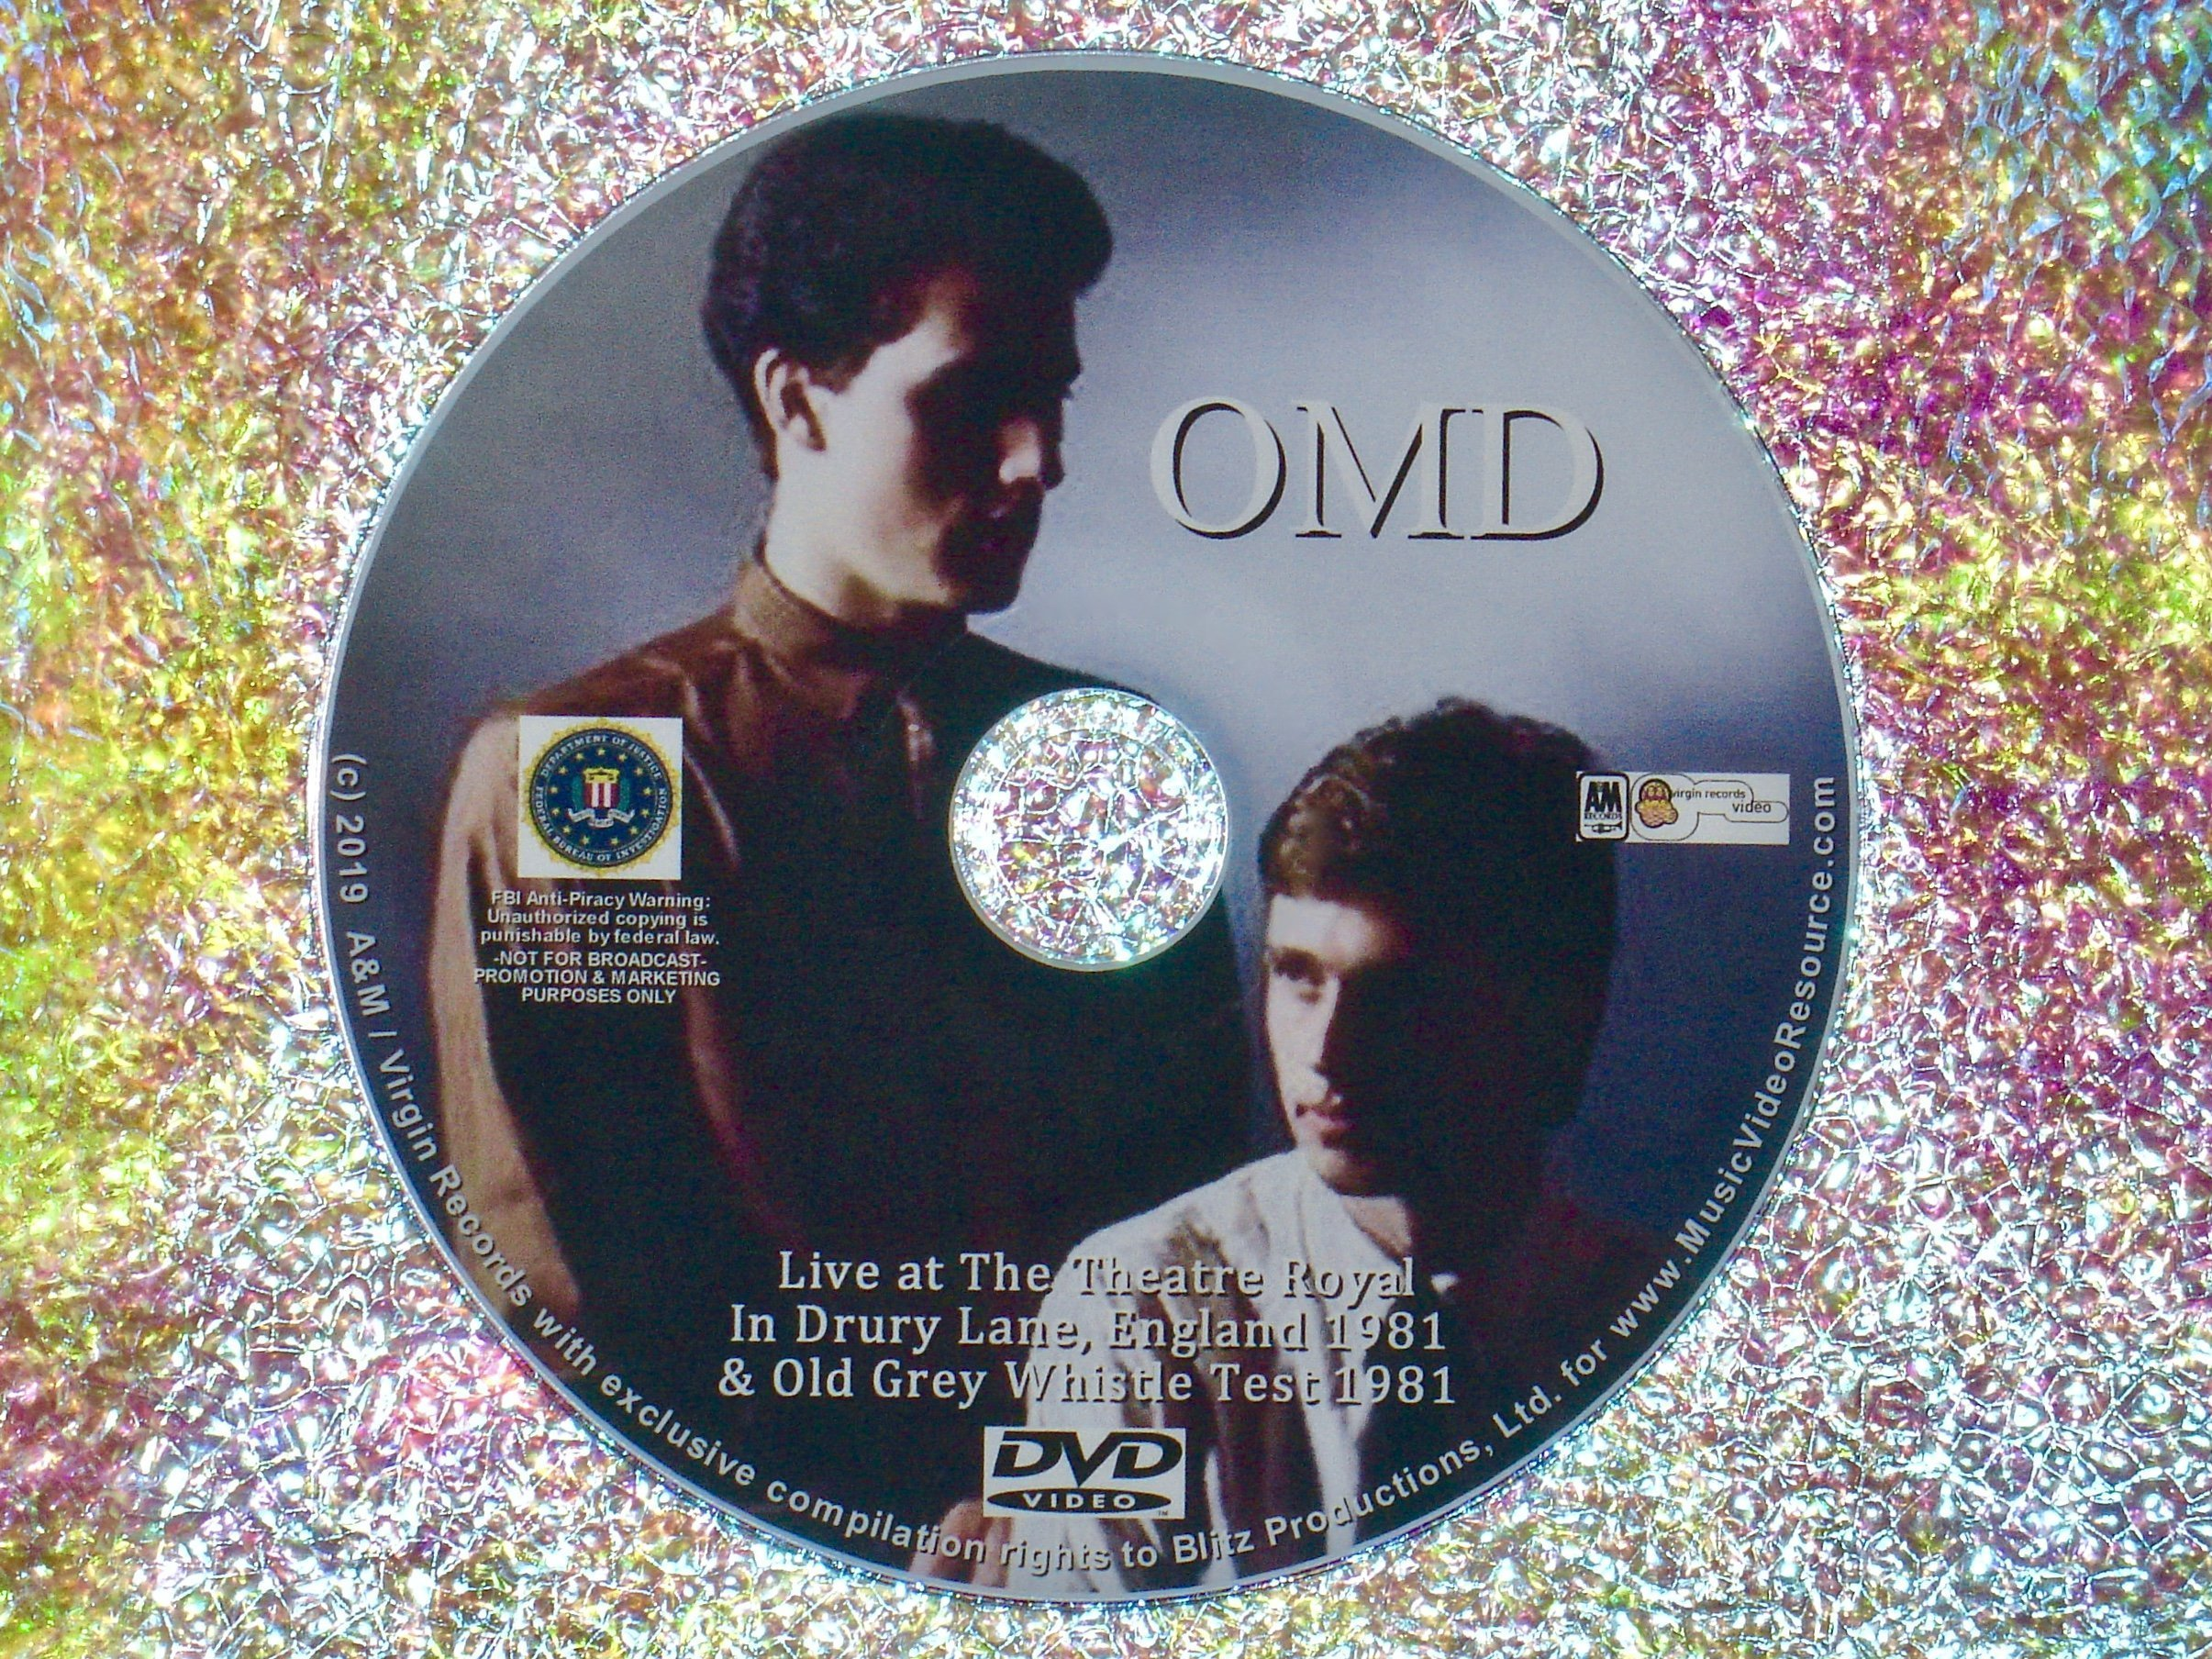 Omd enola gay music video